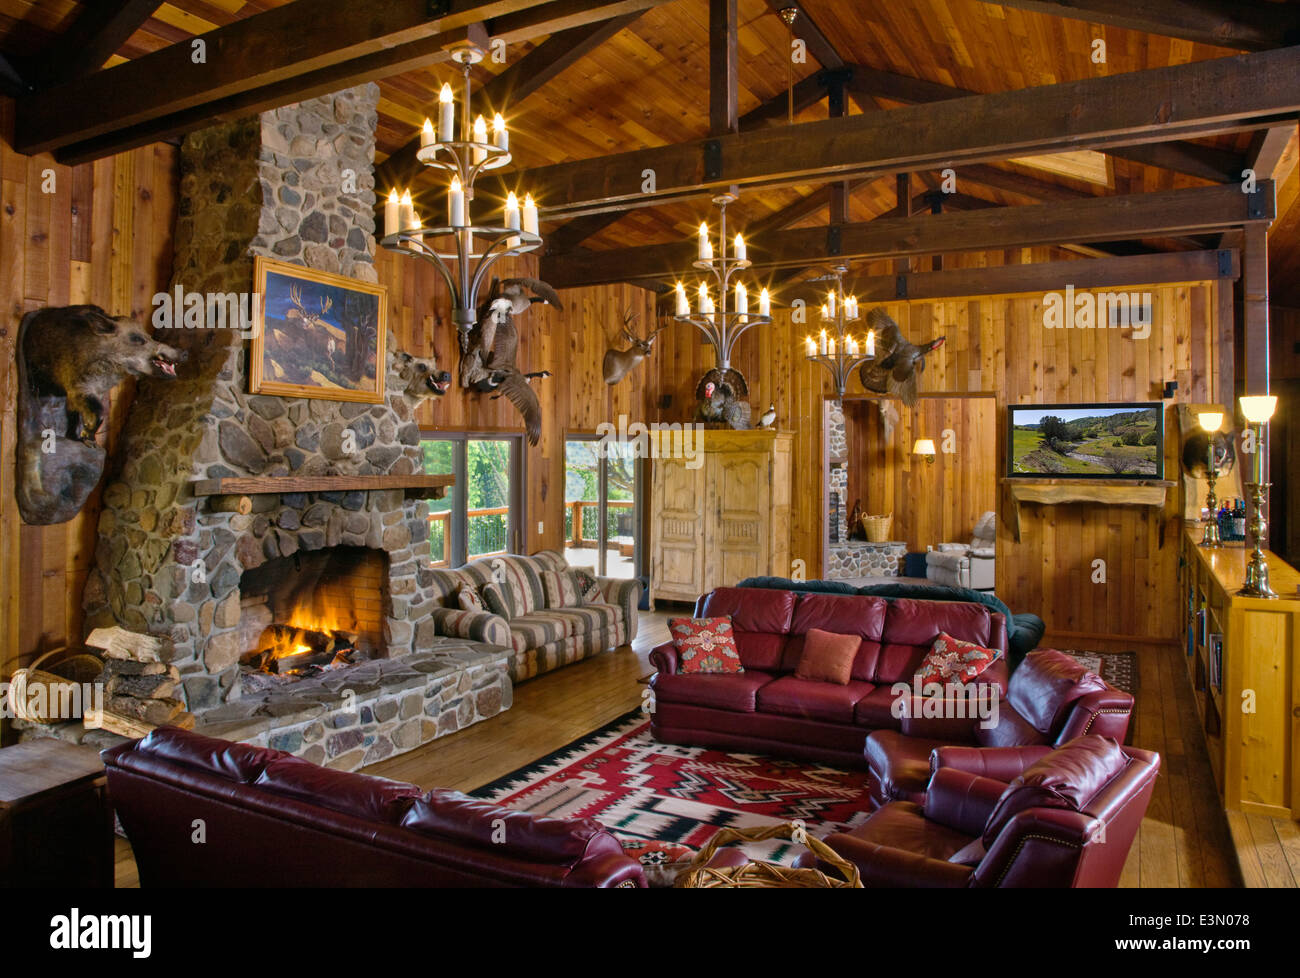 Hunting lodge interior - Interior Of A Hunting Lodge Great Room Central California